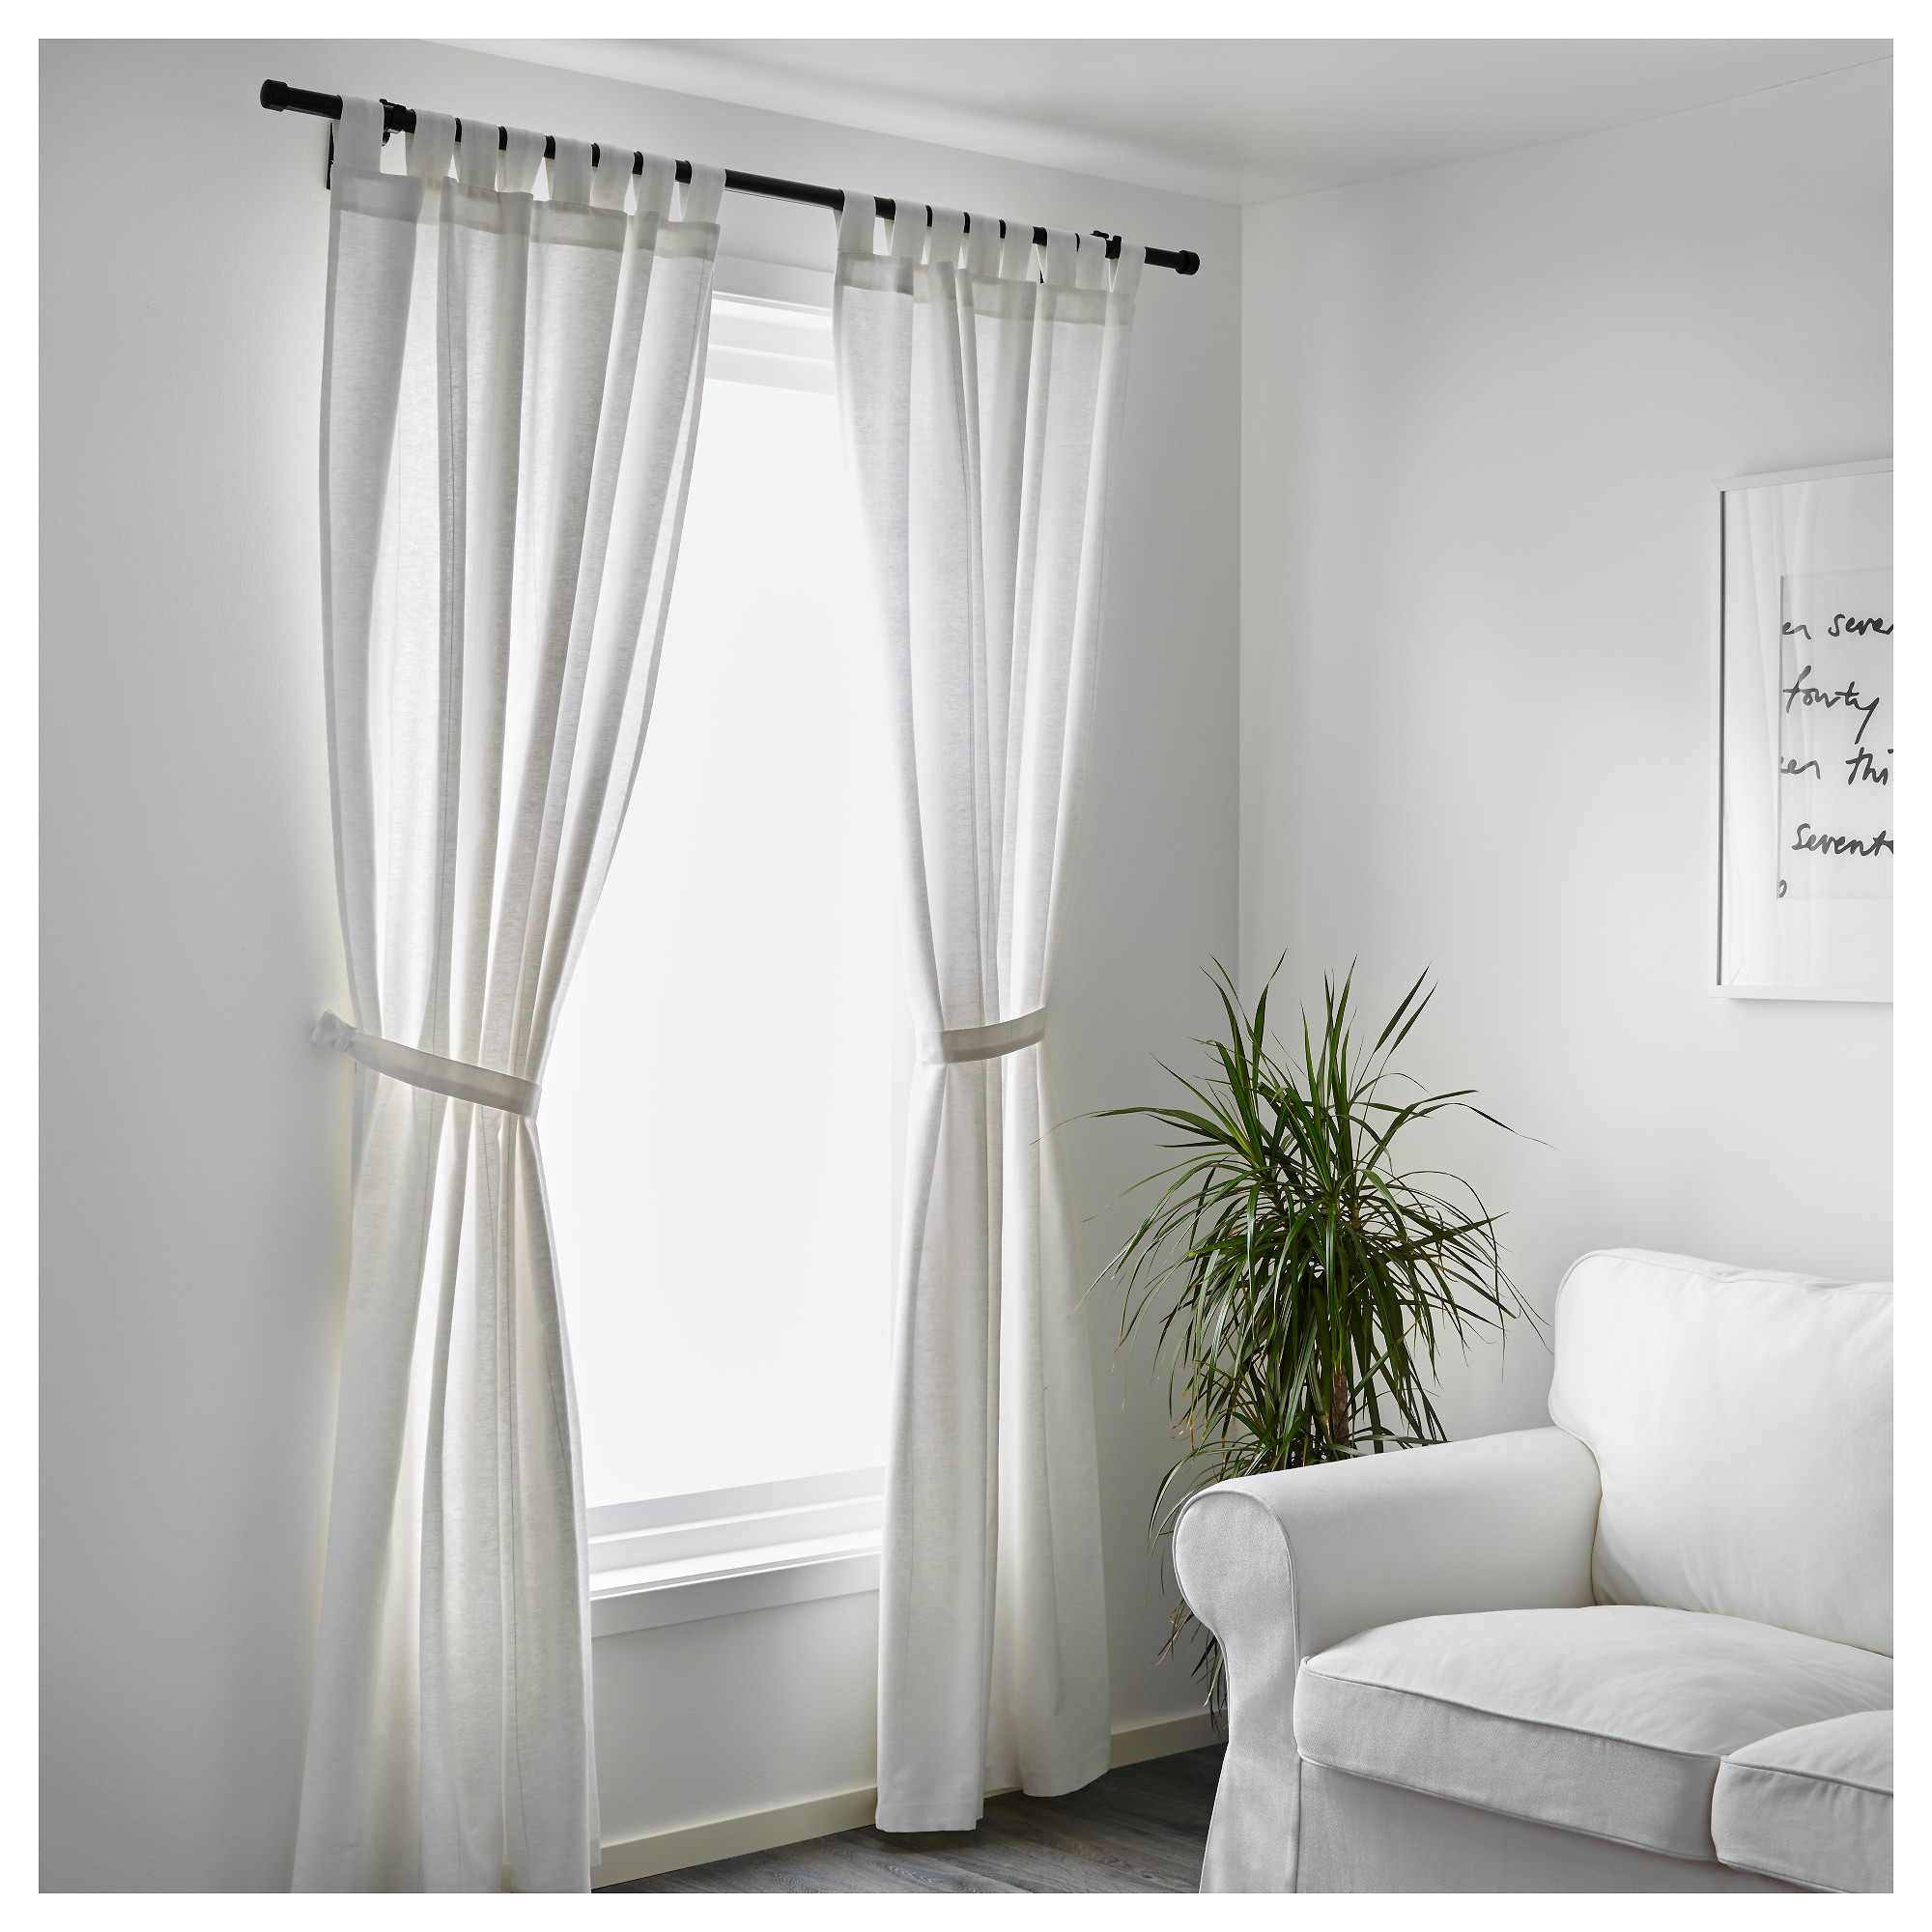 LENDA Curtains with tie-backs, 1 pair - 55x98 \